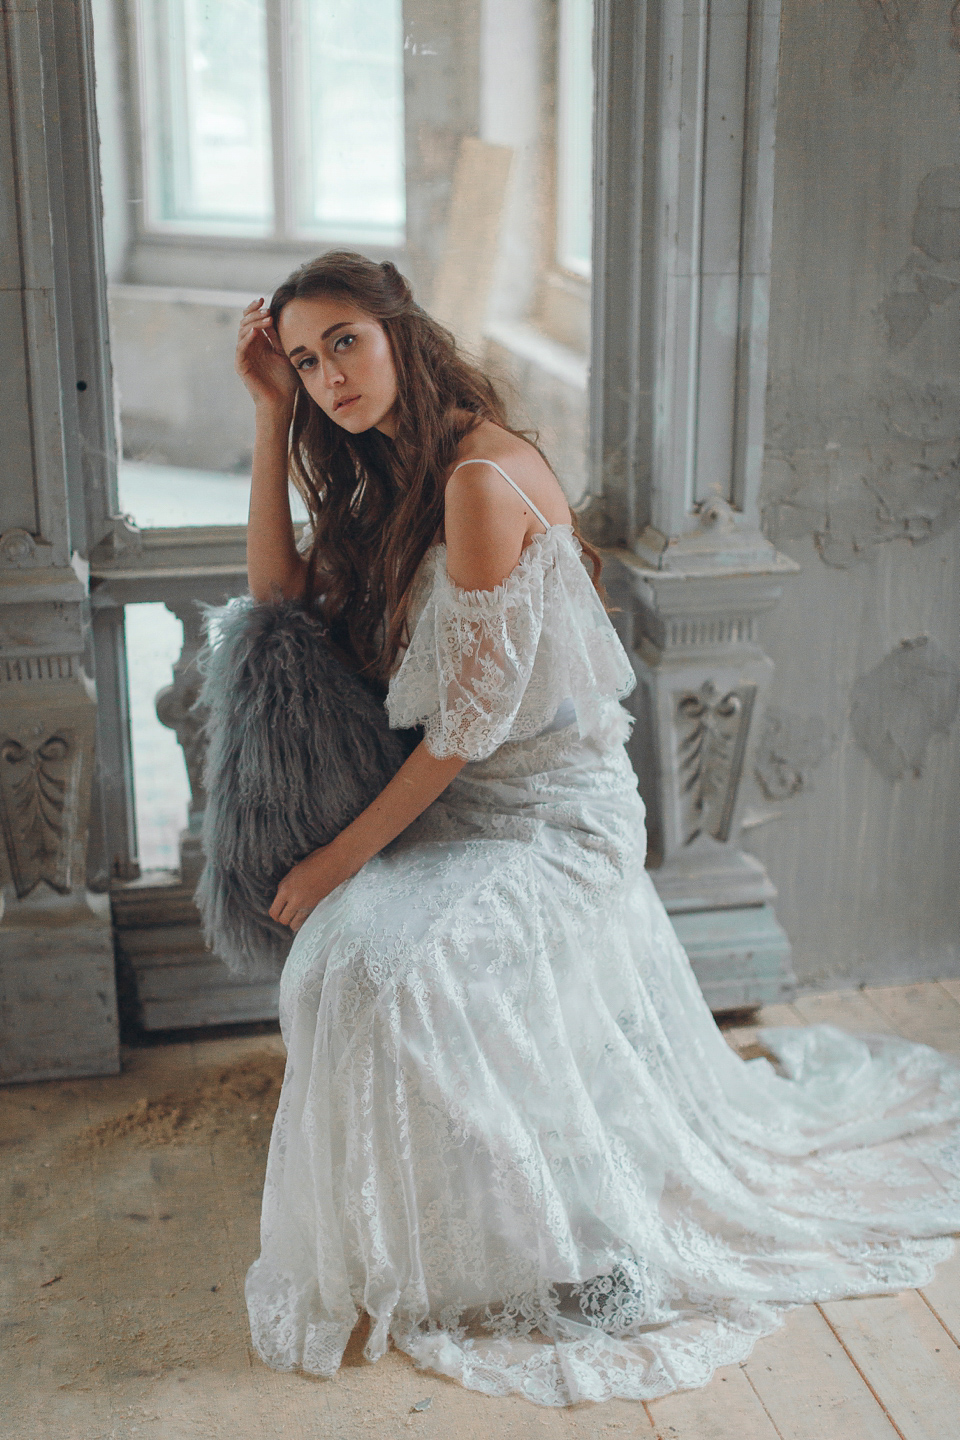 Katya Katya Shehurina - Elegant Lace Wedding Dresses for the Modern Vintage Bride (Bridal Fashion Fashion & Beauty Get Inspired Supplier Spotlight )